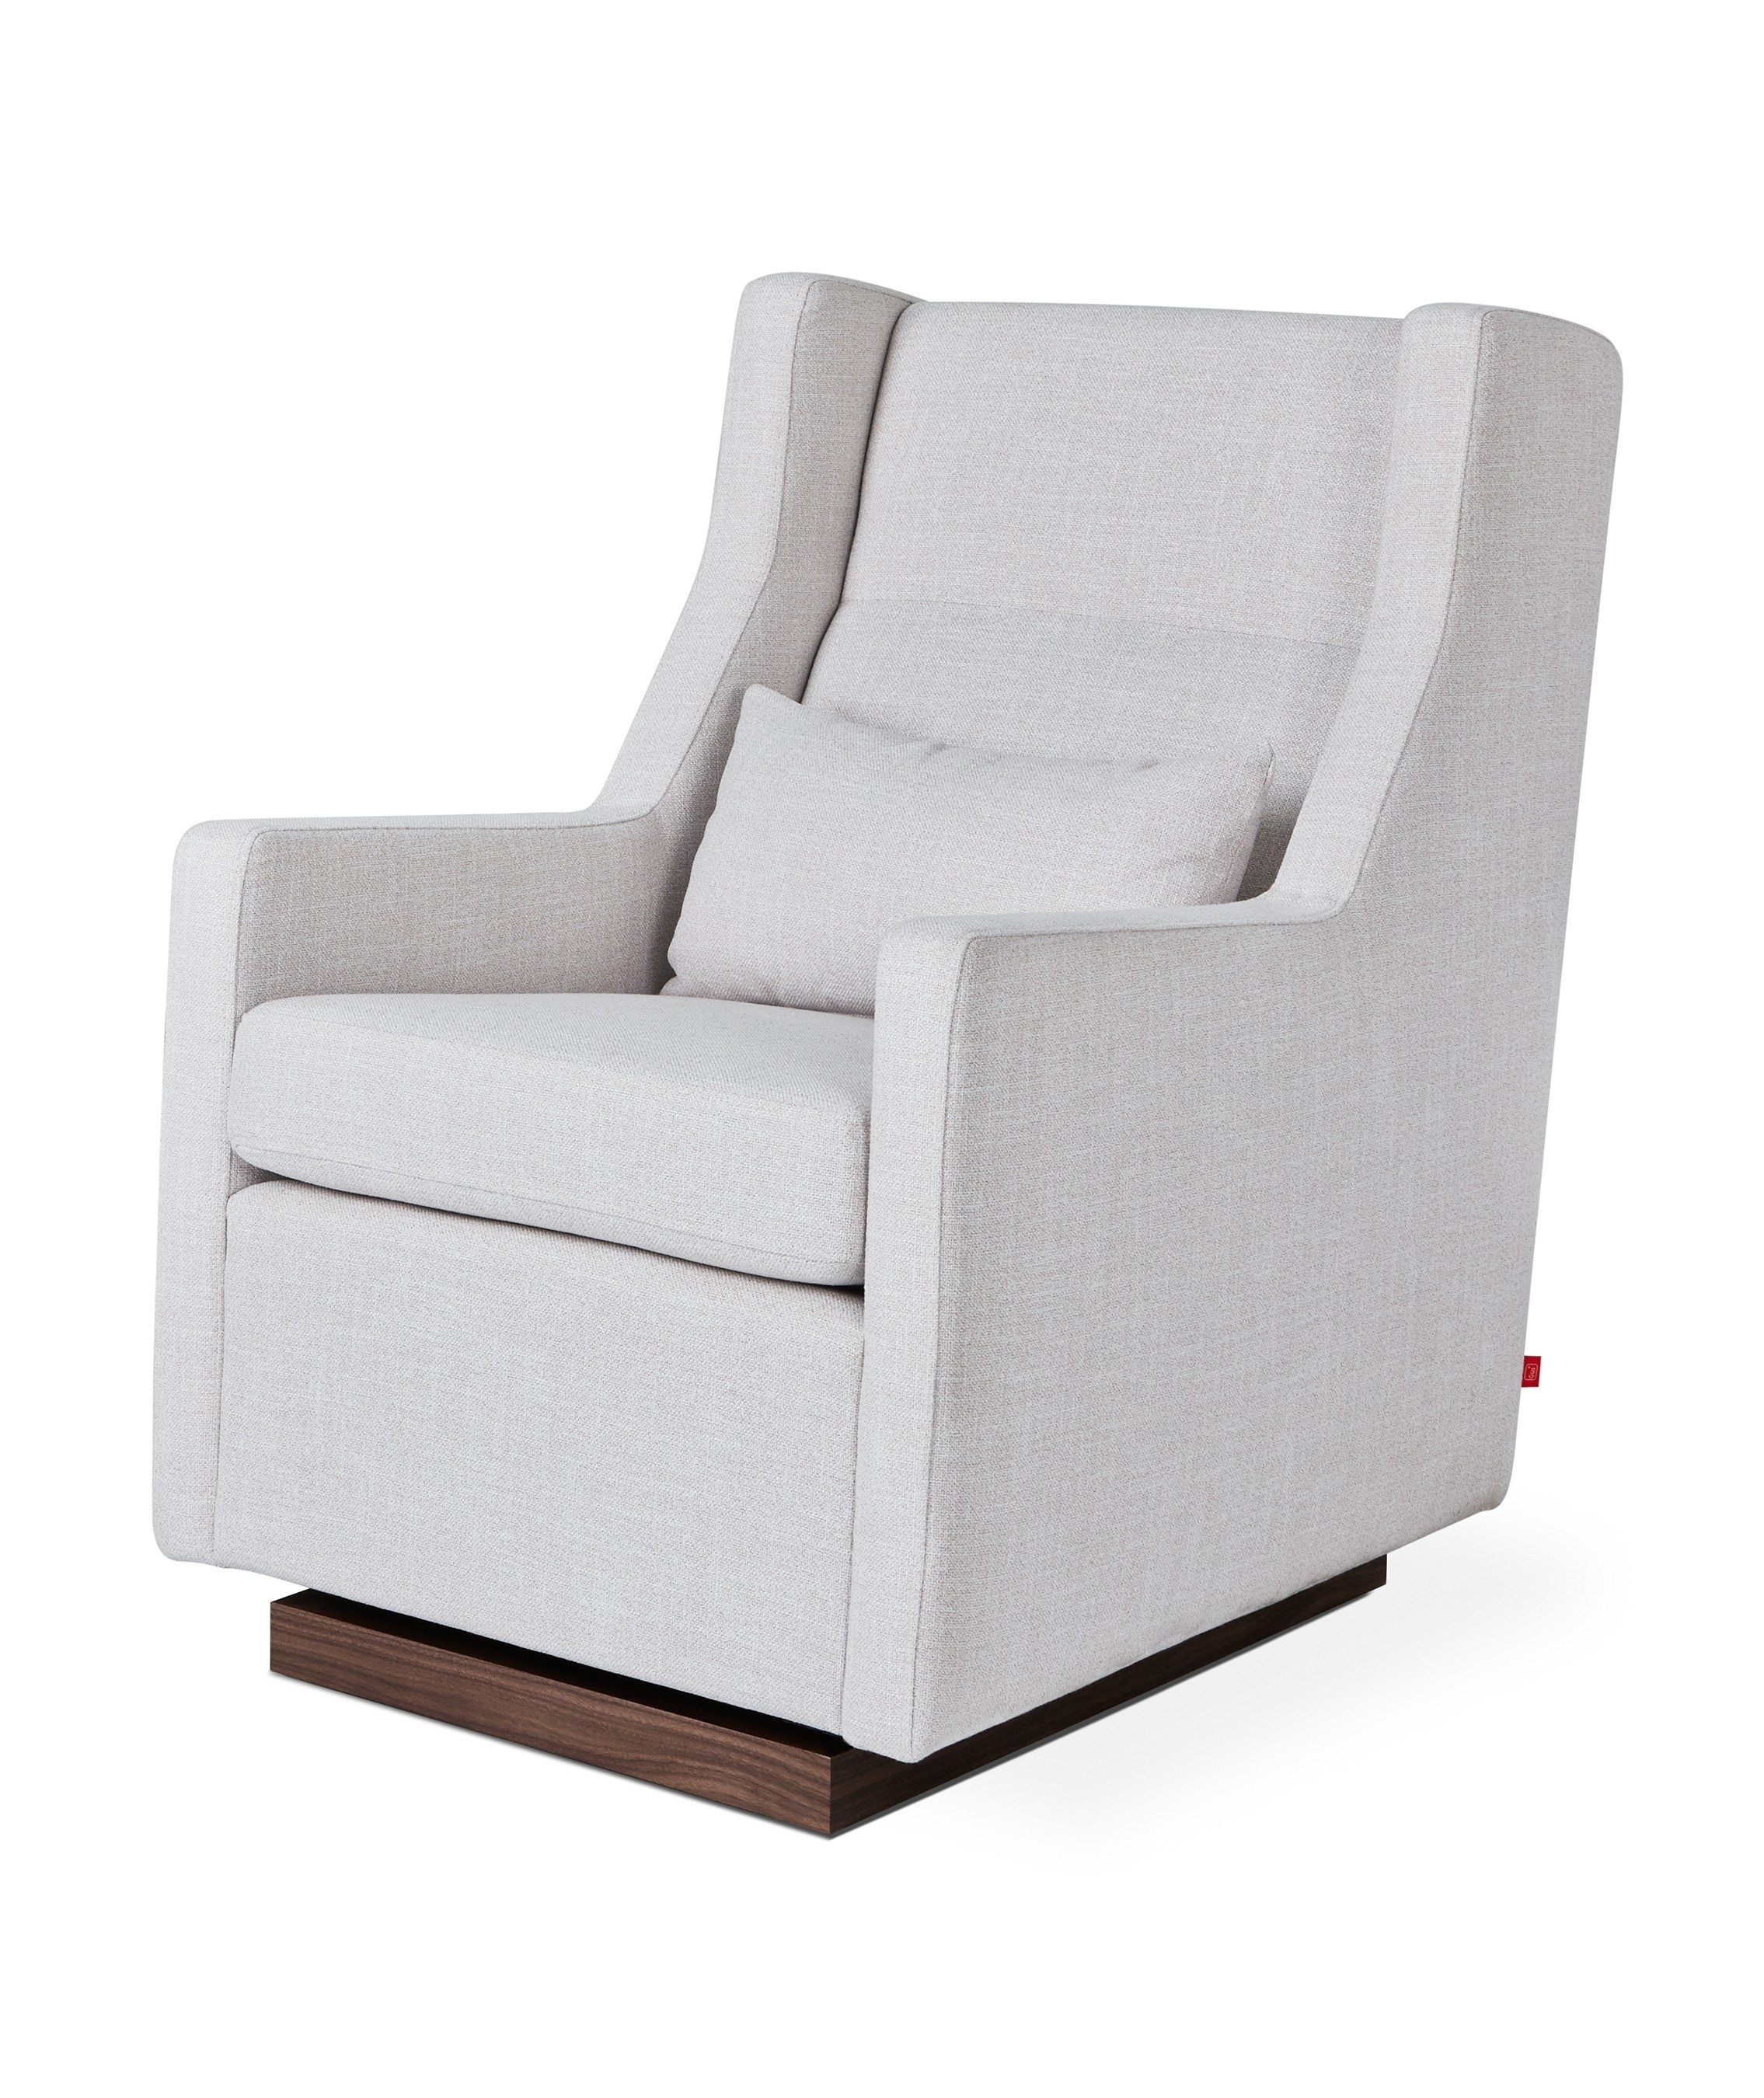 CLEARANCE - Gus* Modern Sparrow Glider, Cambie Parchment